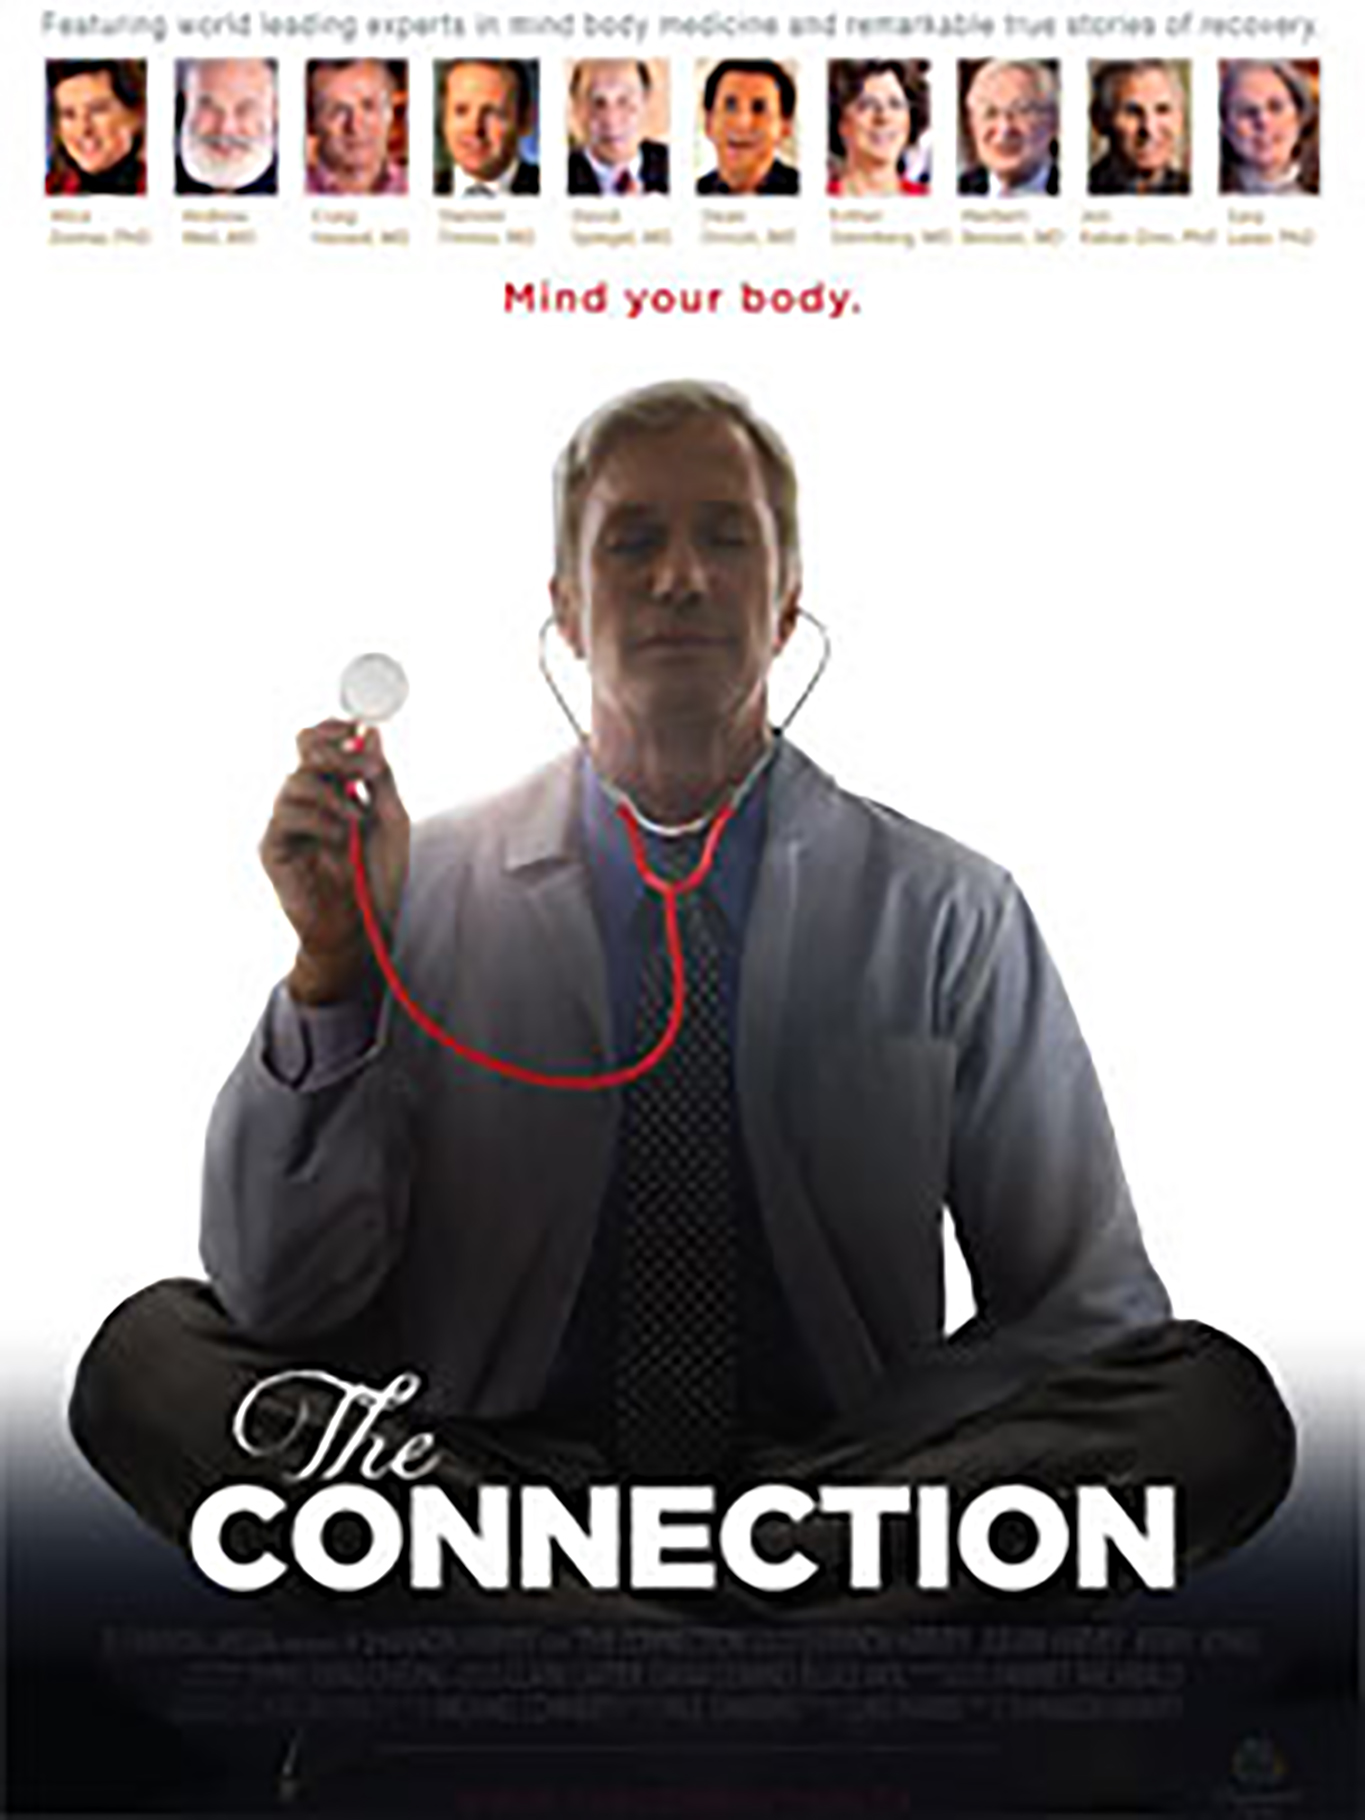 After being diagnosed with an autoimmune disease, journalist and filmmaker Shannon Harvey travelled the world in search of the missing link in healthcare. From interviewing world leading scientists to meeting people with remarkable stories of recovery from severe back pain, heart disease, infertility, cancer and multiple sclerosis, this documentary delves into the link between our mind and body.